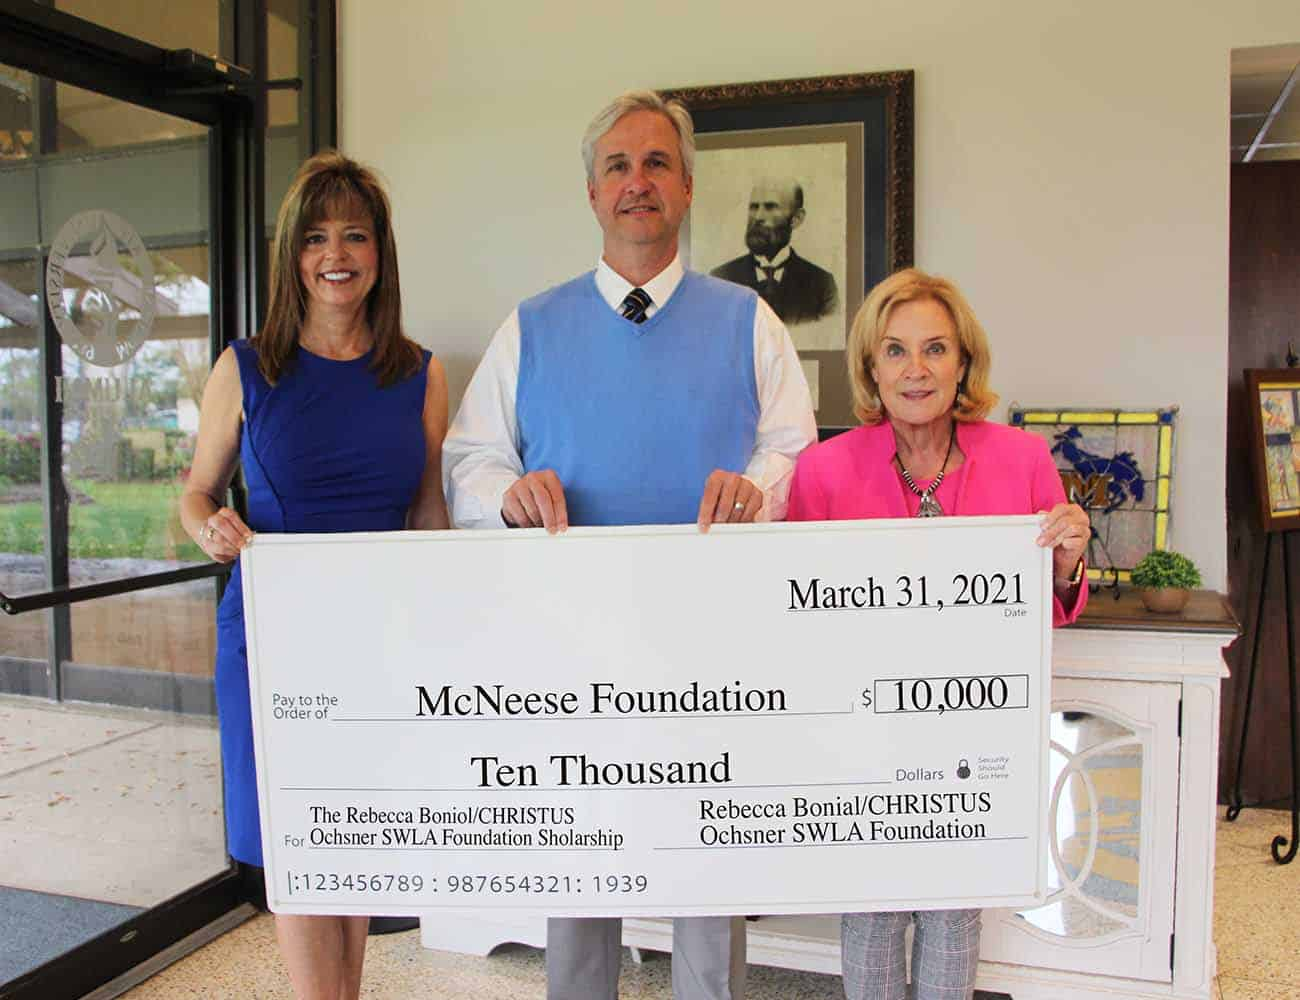 On hand for the donation are, from left, Rebecca F. Boniol, Dr. Wade Rousse, McNeese vice president for university advancement and dean of the college of business, and Kay C. Barnett, CFRE, executive director of development for the CHRISTUS Ochsner Foundation.